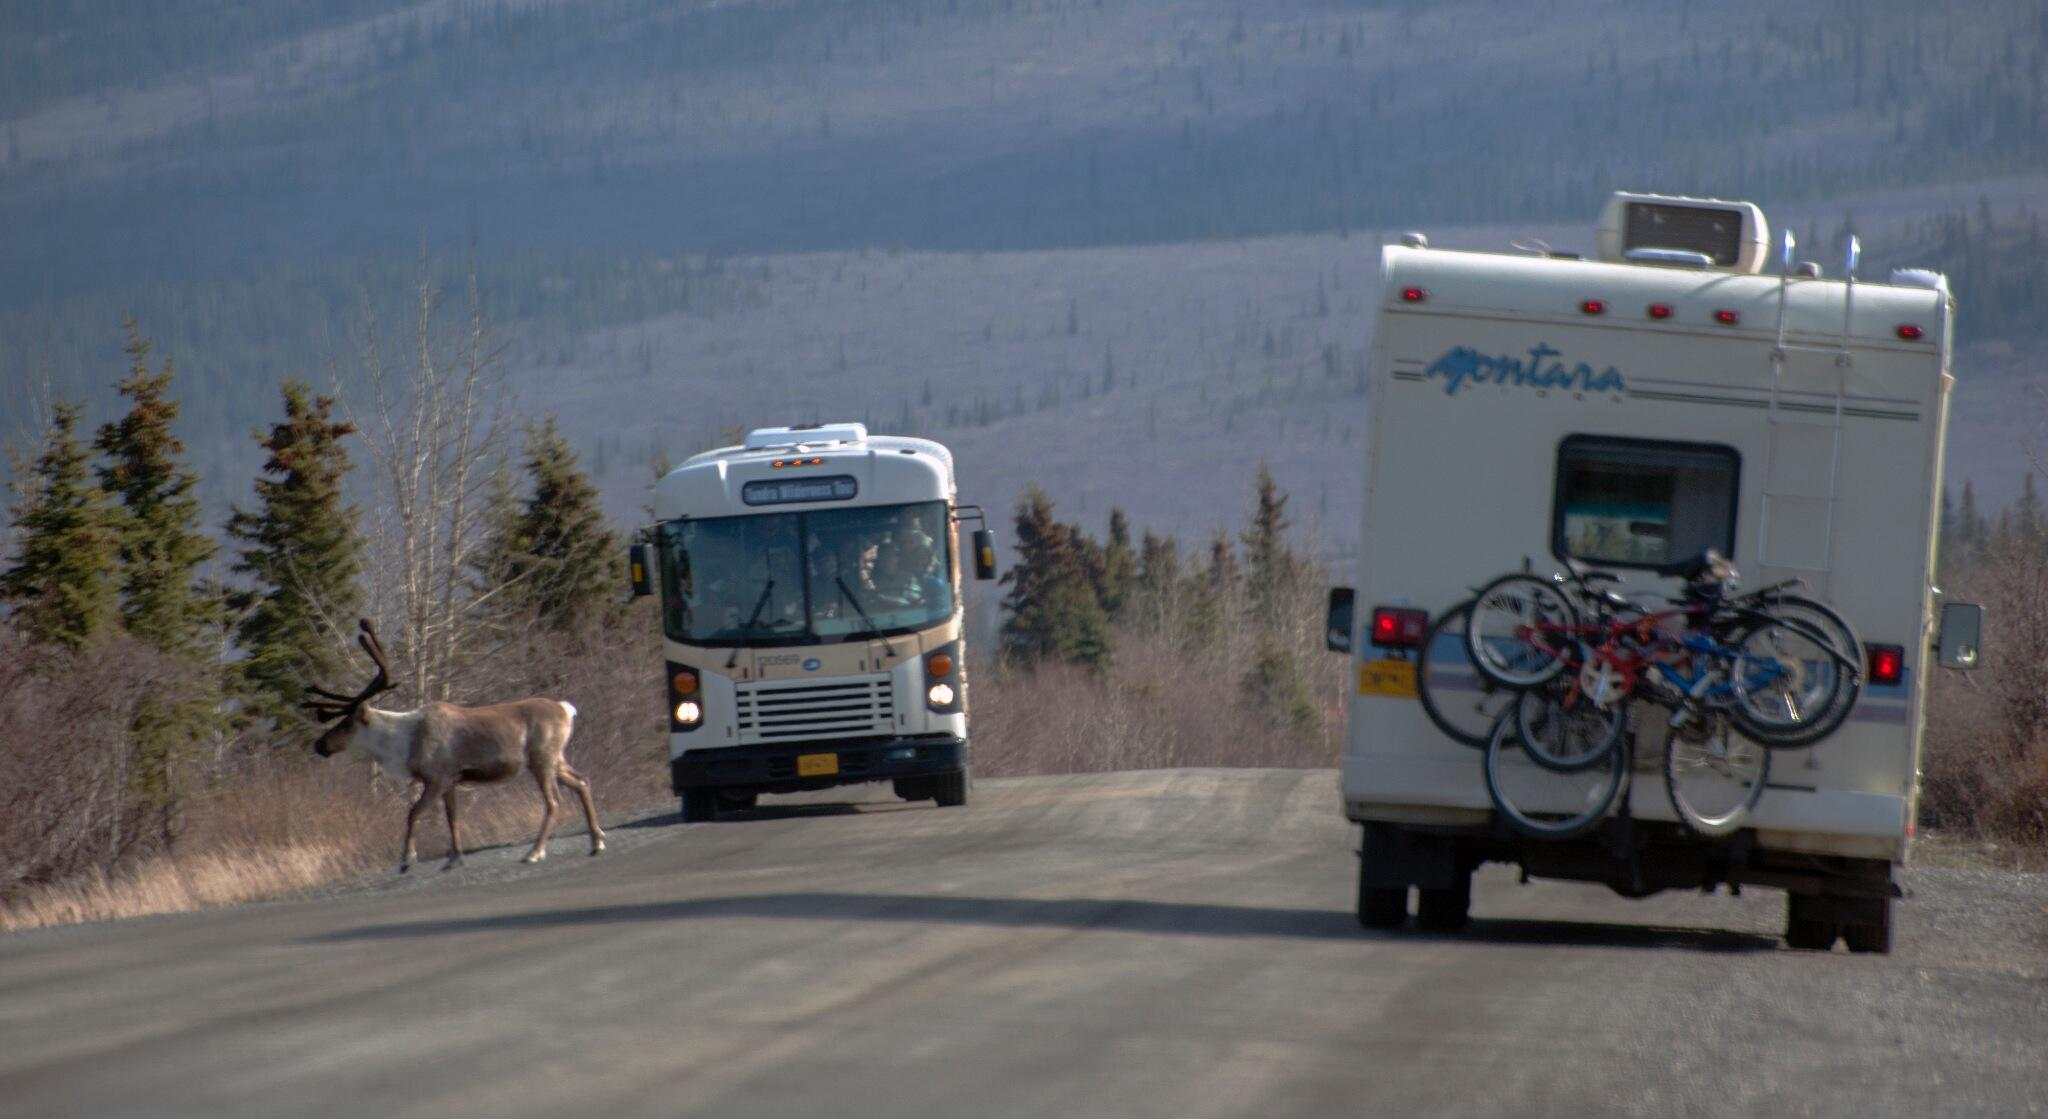 Memorial Day traffic on the Denali Park Road, just east of Teklanika River Campground. >je http://t.co/sIDye2e4W7